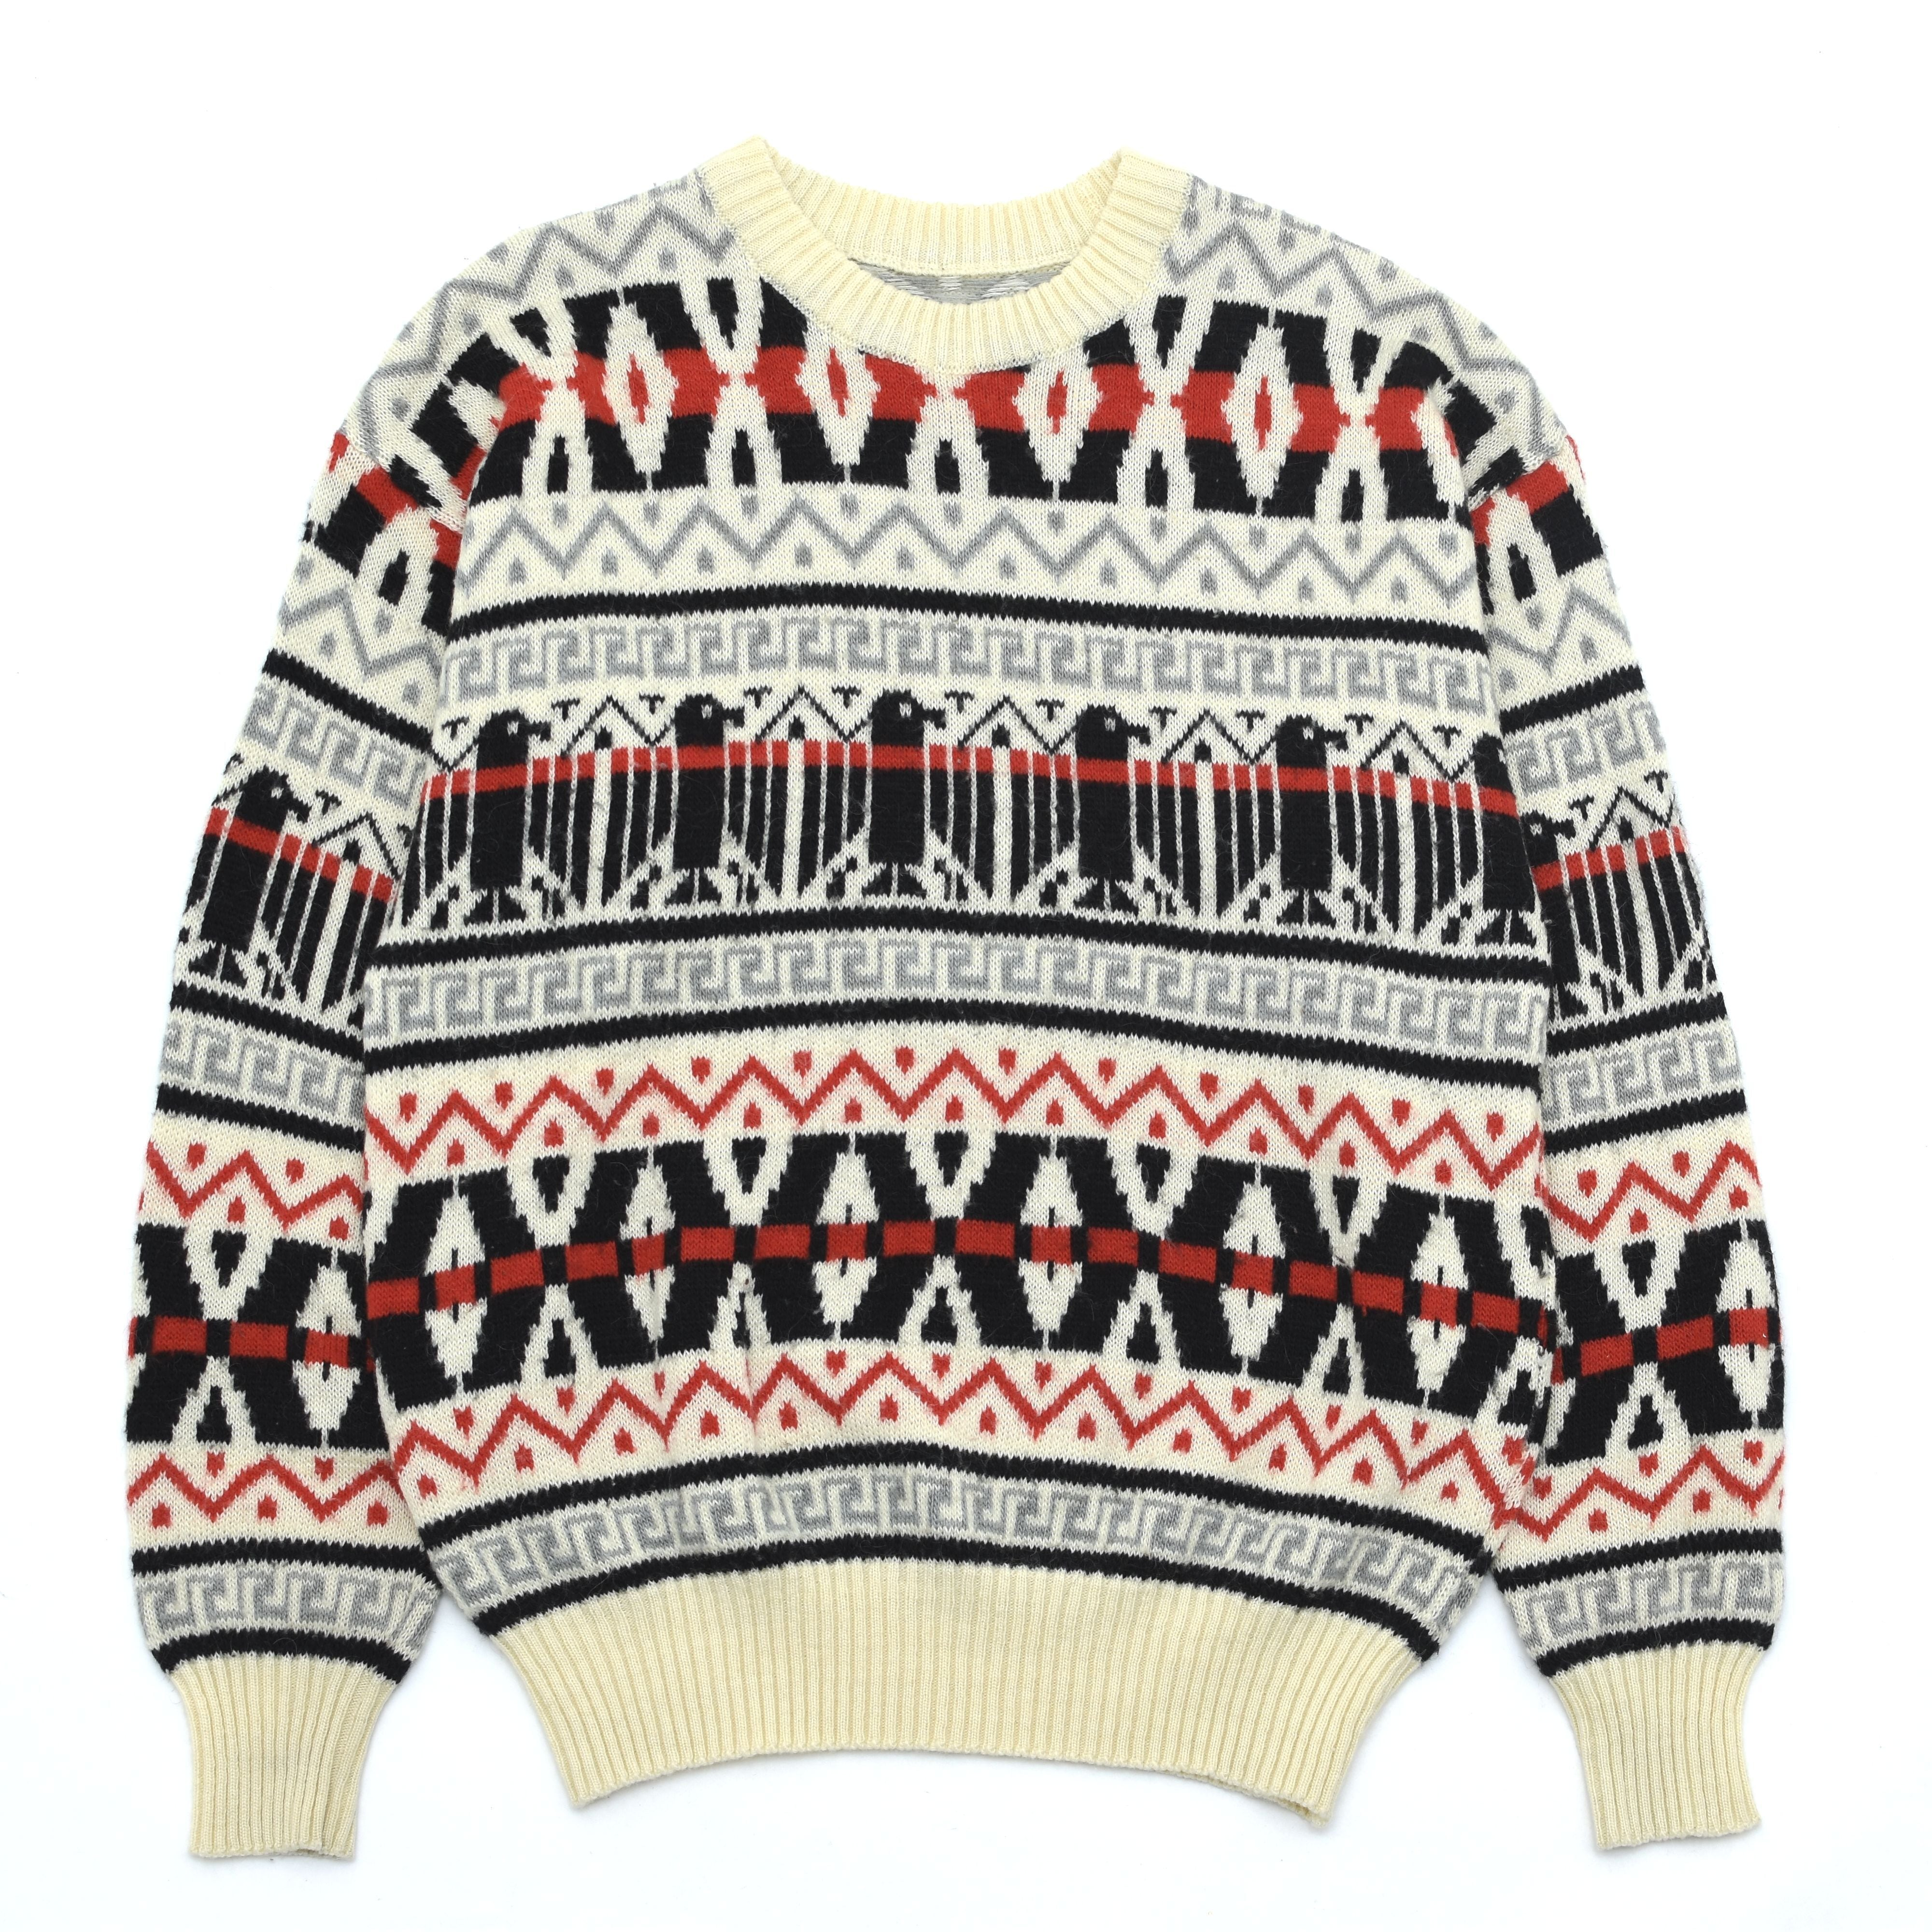 Native pattern wool pullover knit